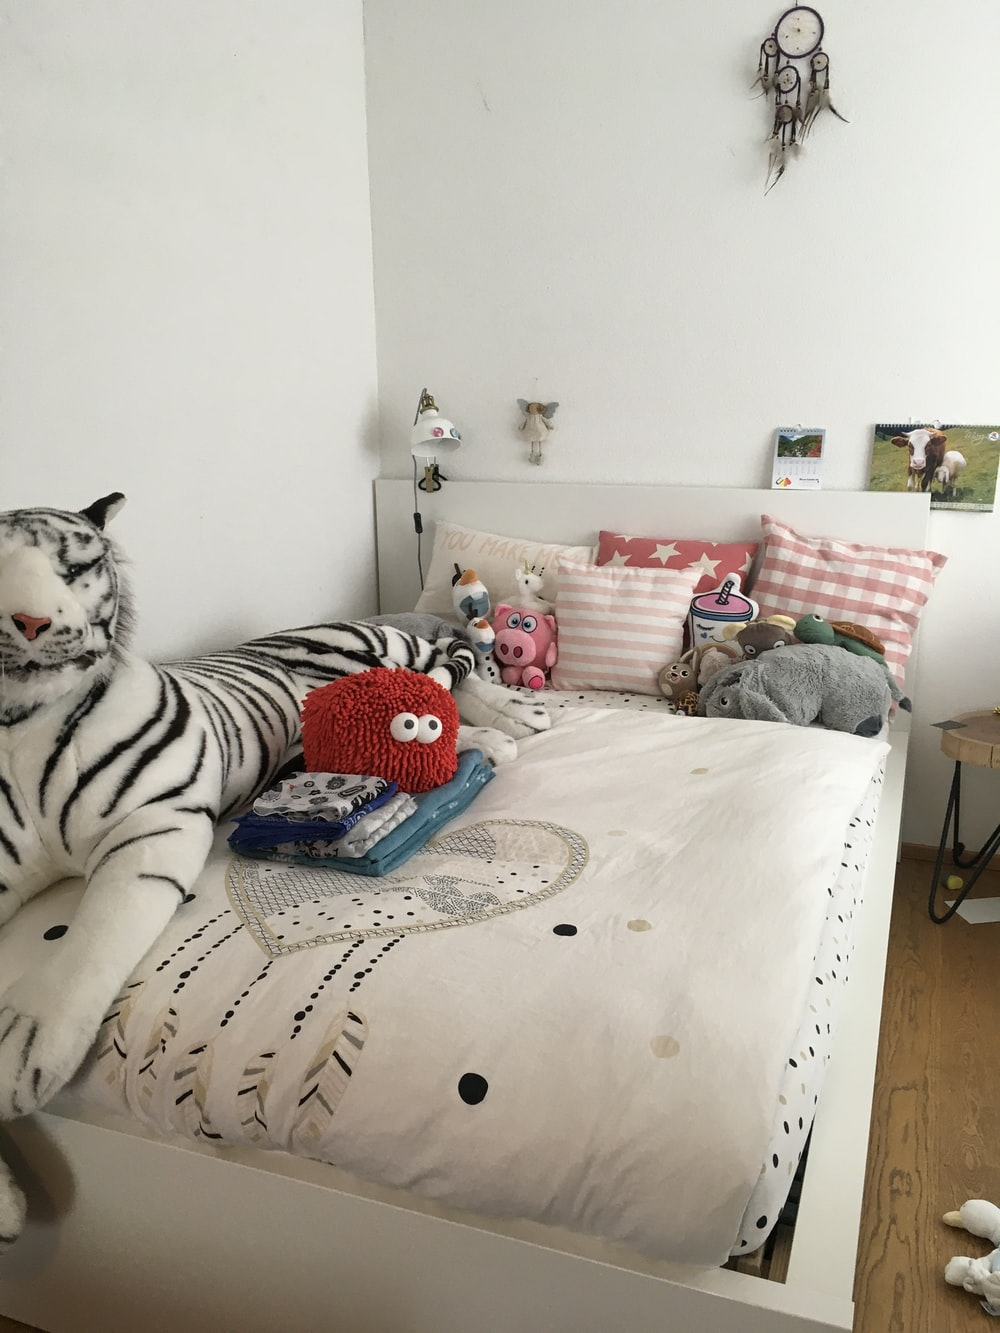 white and black cat on bed